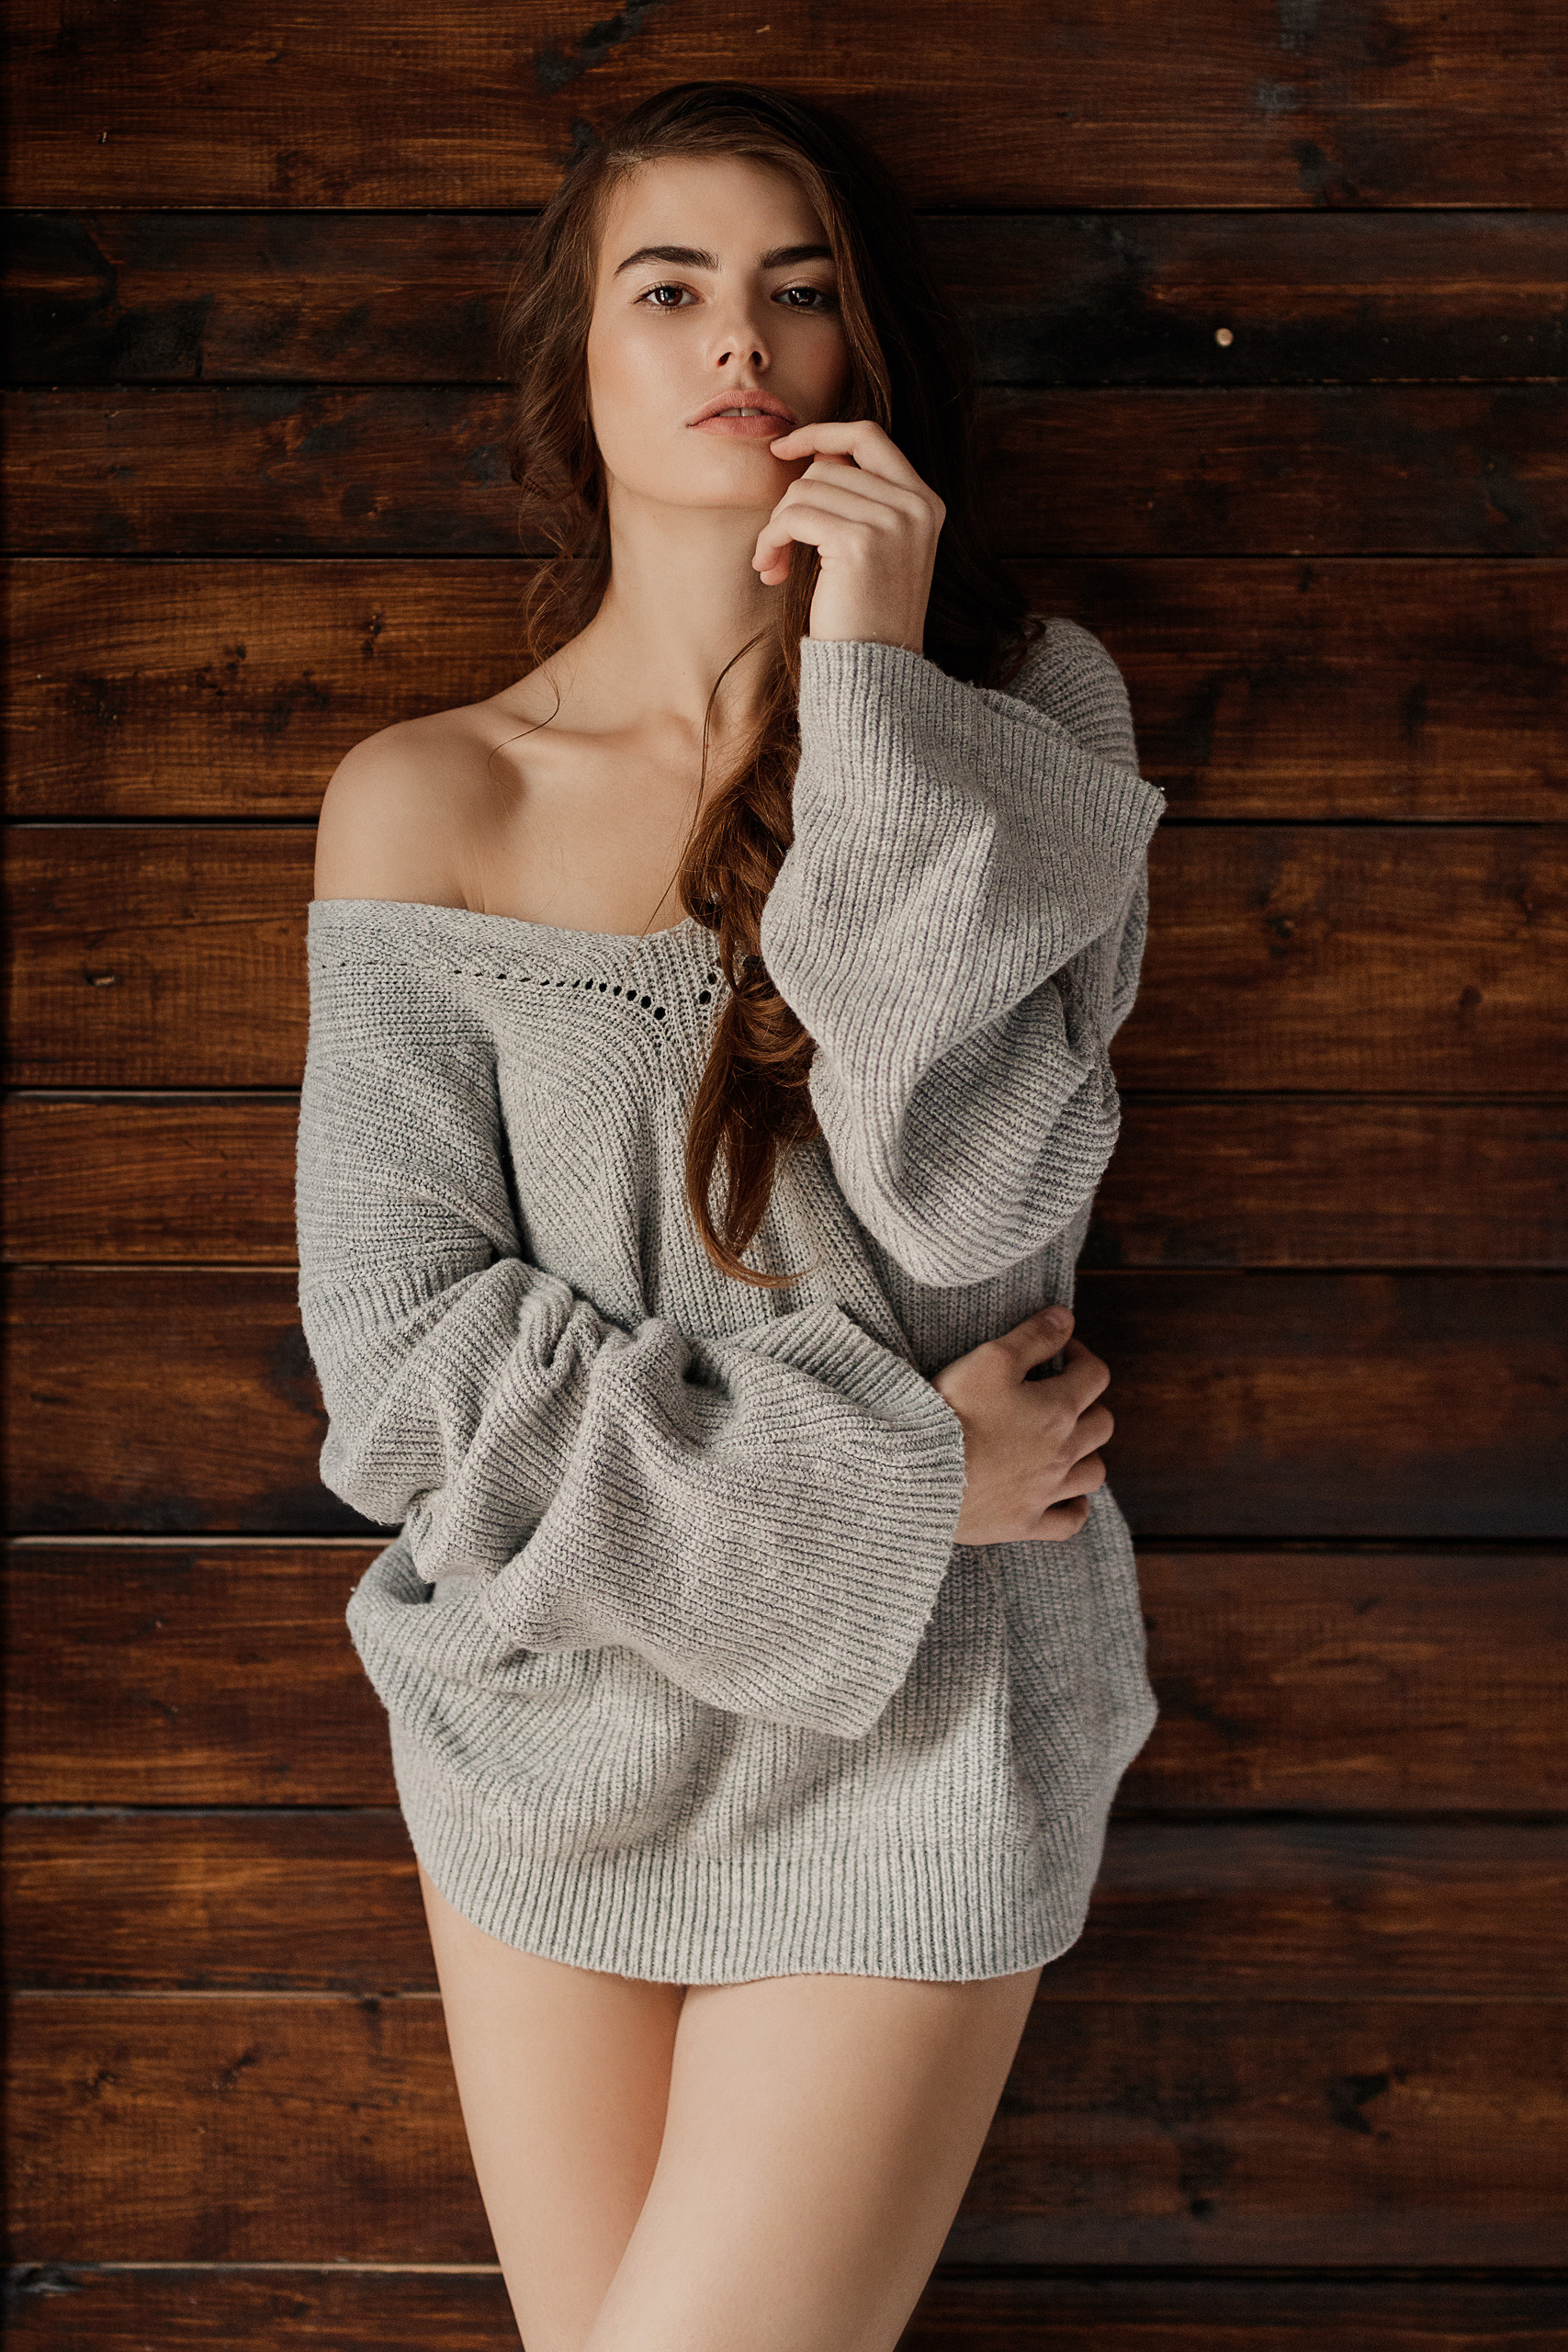 Niagara boudoir sensual gray sweater natural light casual